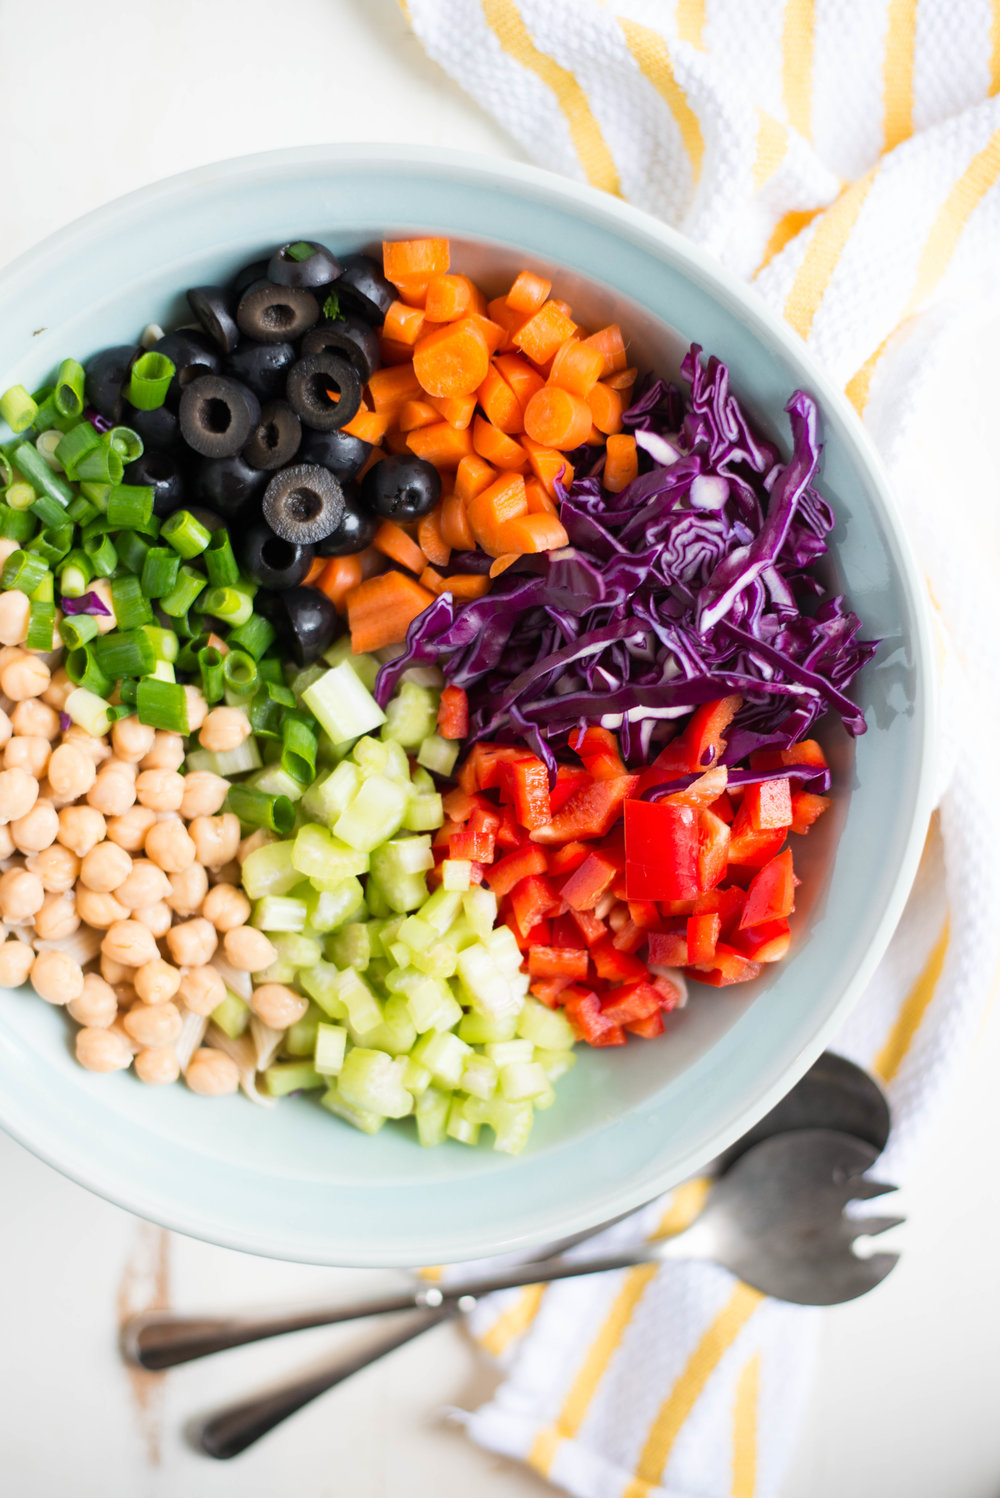 Bright, colorful, and super tasty, 20-Minute Rainbow Veggie Pasta Salad is just the thing for picnics, potlucks, or as a healthy side any night of the week.